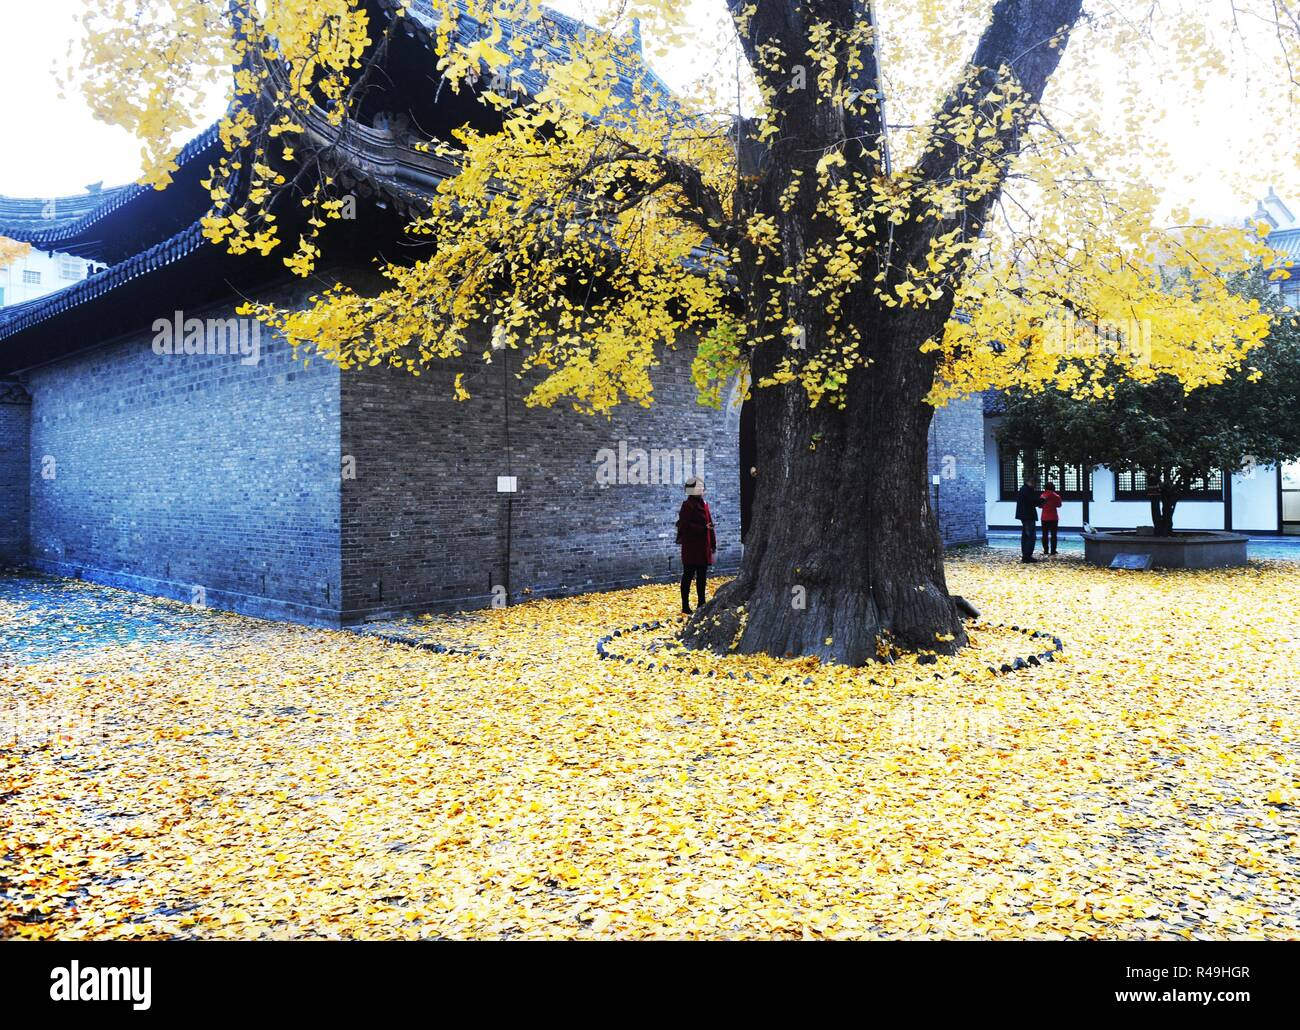 Yangzhou, China's Jiangsu Province. 25th Nov, 2018. A visitor stops under a ginkgo tree at the Shangfang Temple in Yangzhou City, east China's Jiangsu Province, Nov. 25, 2018. Credit: Pu Liangping/Xinhua/Alamy Live News Stock Photo